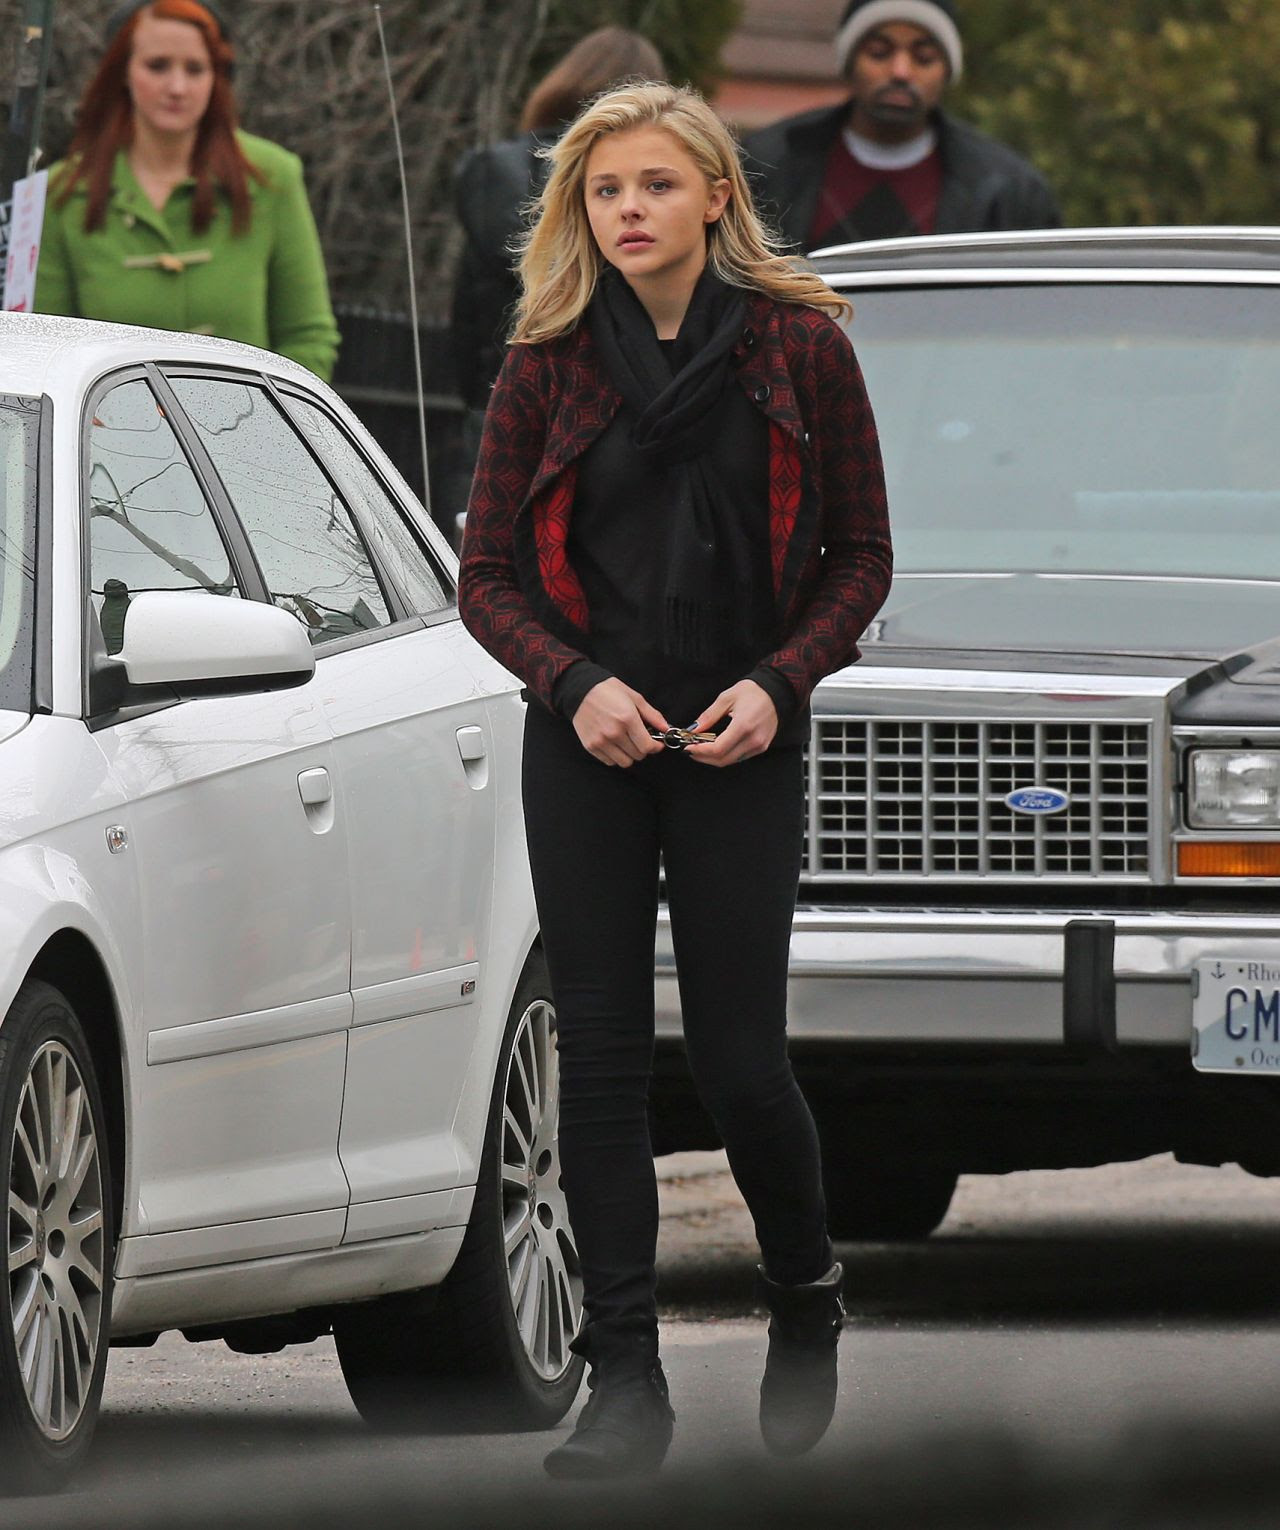 http://celebmafia.com/wp-content/uploads/2015/04/chloe-moretz-set-of-november-criminals-in-providence-rhode-island-april-2015_4.jpg